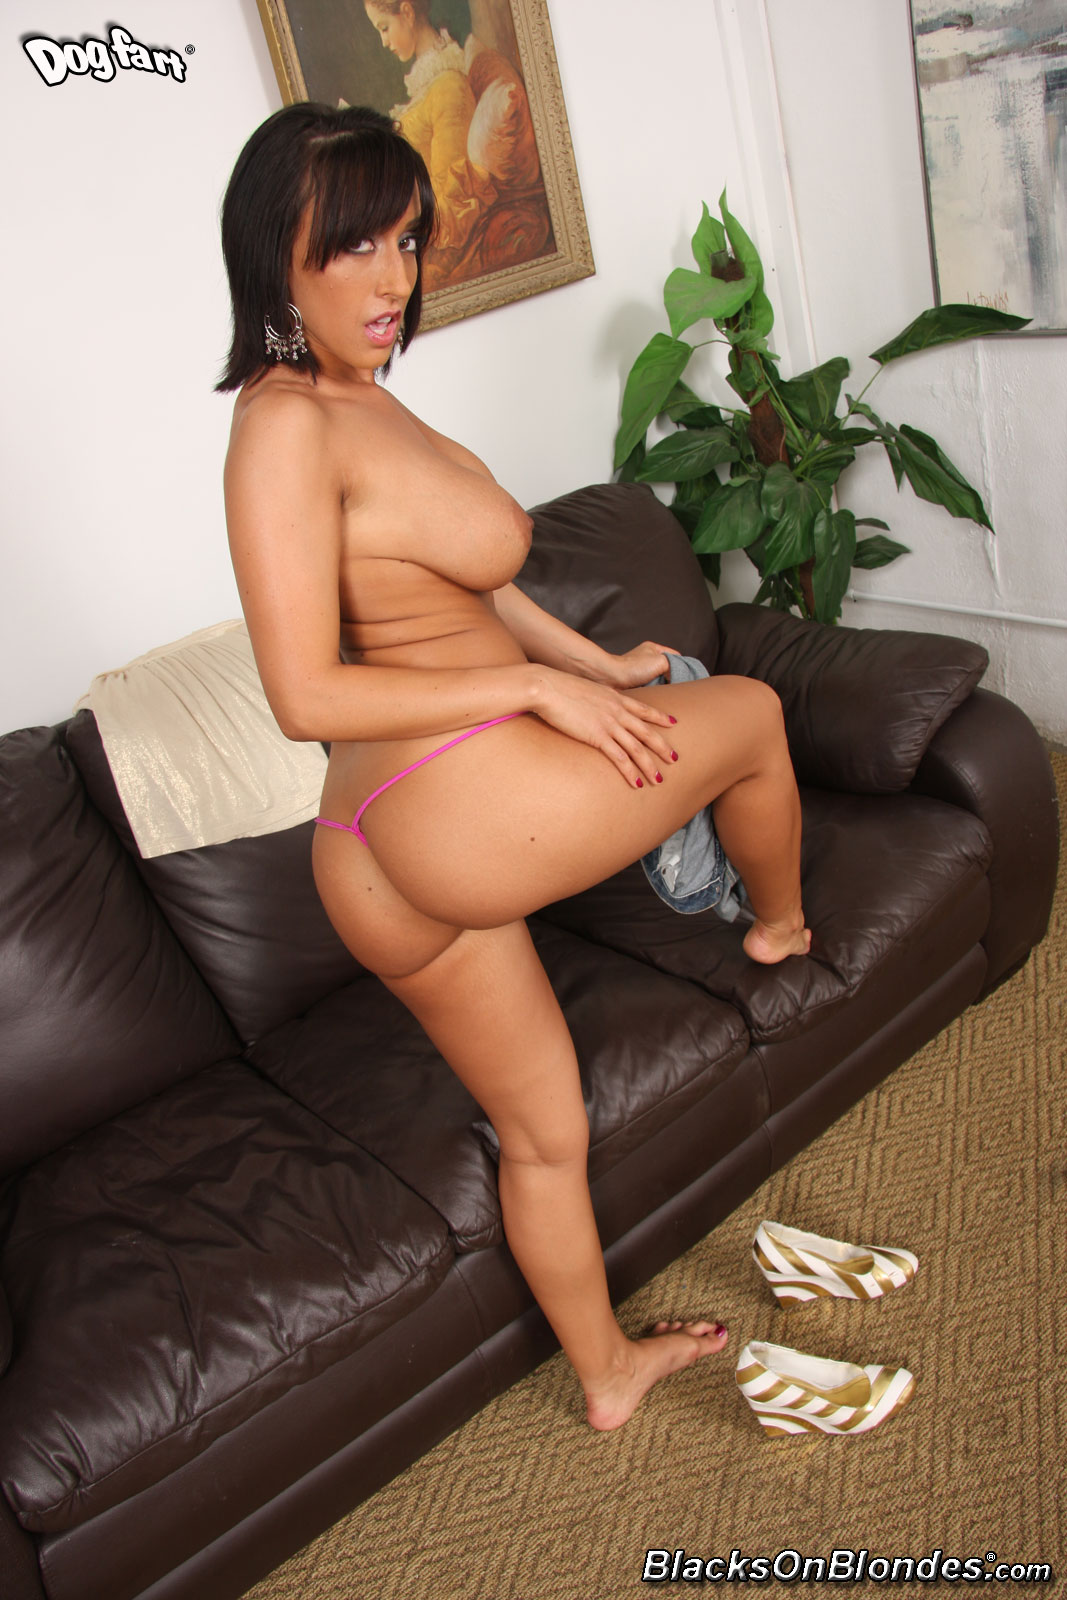 Ricki white fucked by bbc on casting couch 3